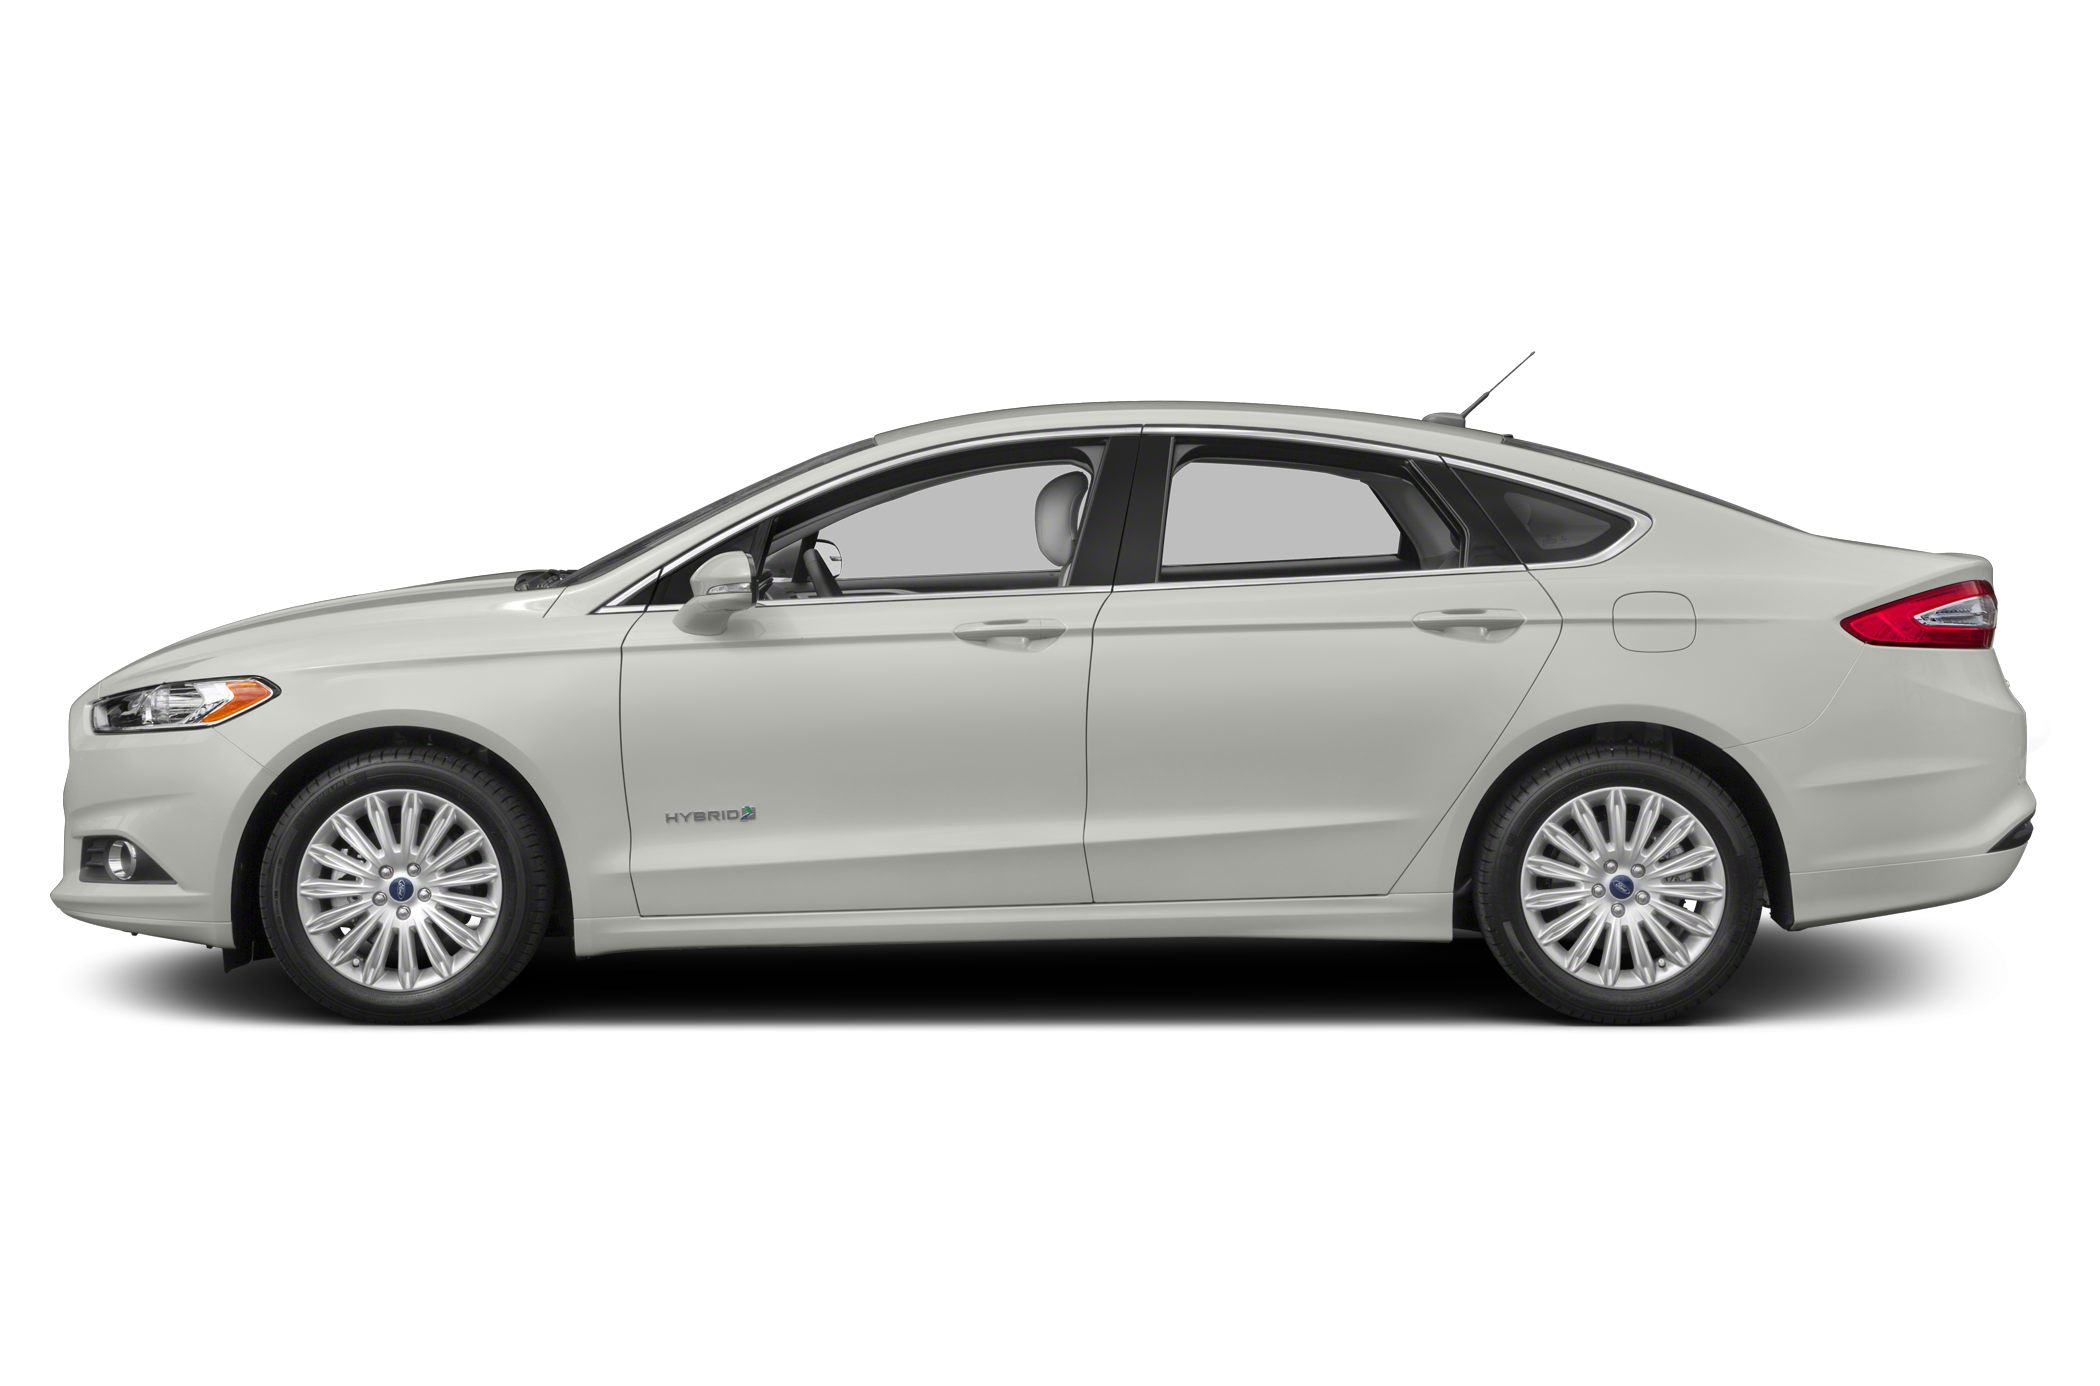 2014 ford fusion hybrid information and photos momentcar. Black Bedroom Furniture Sets. Home Design Ideas